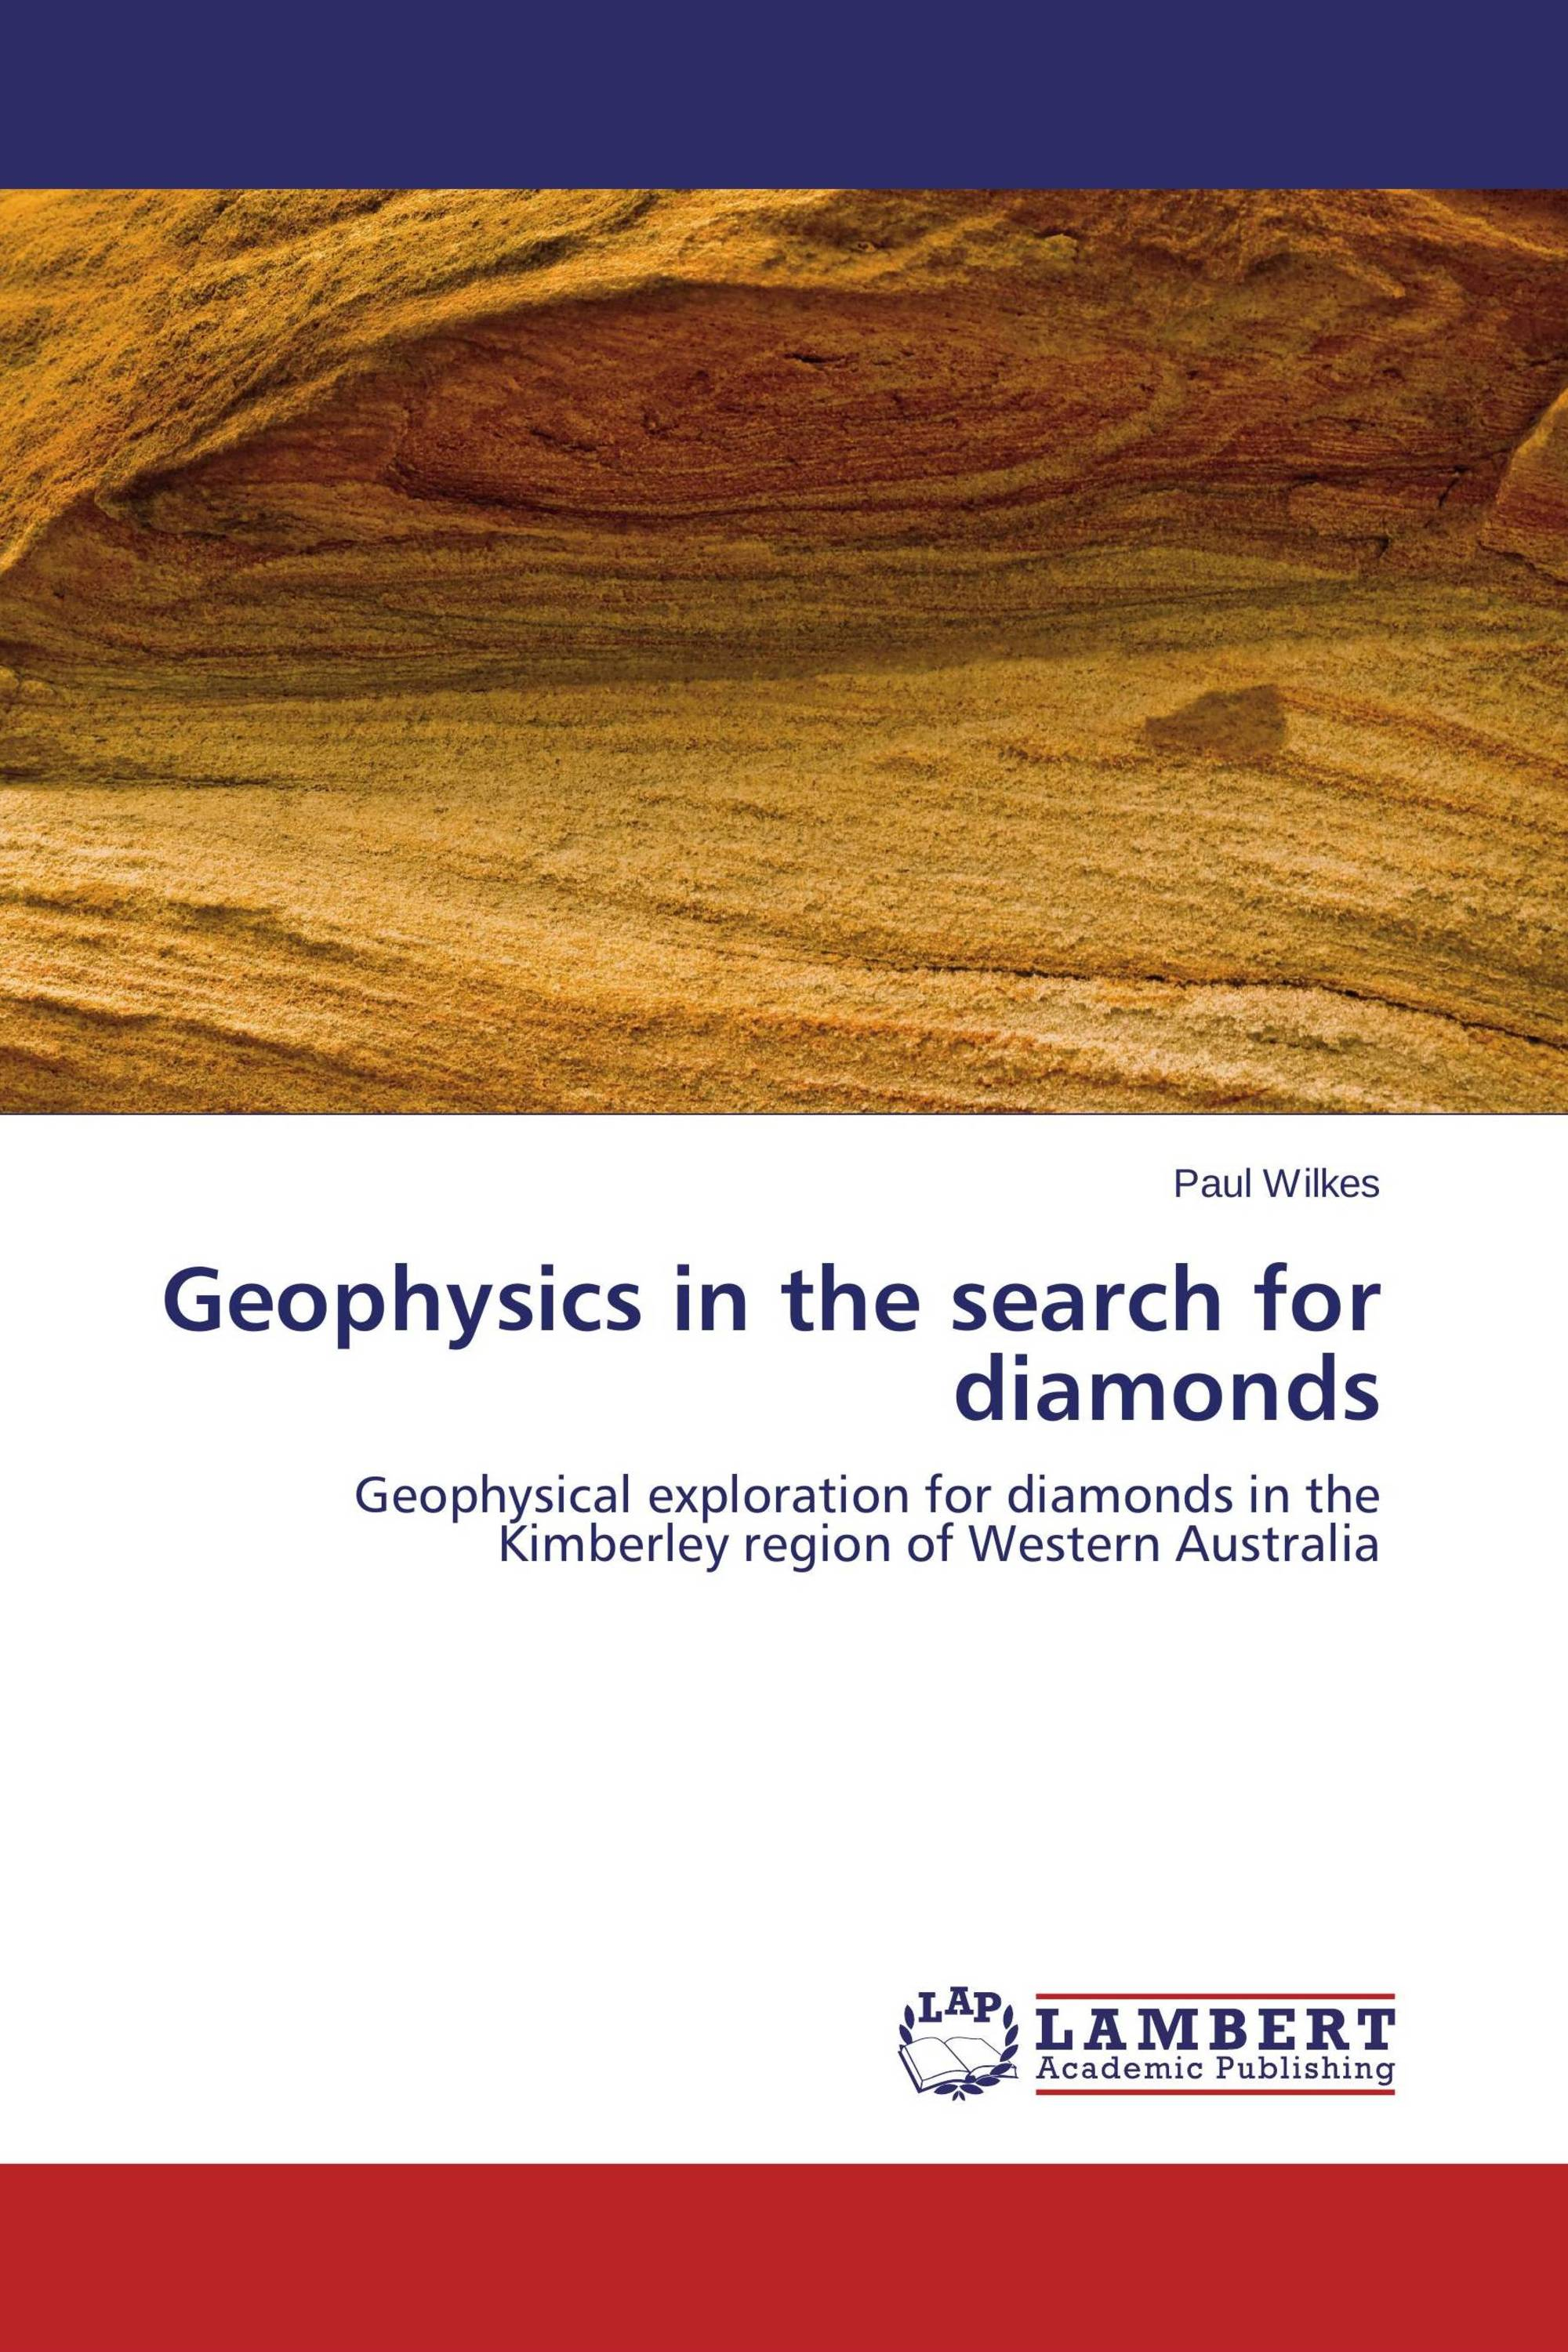 Geophysics in the search for diamonds